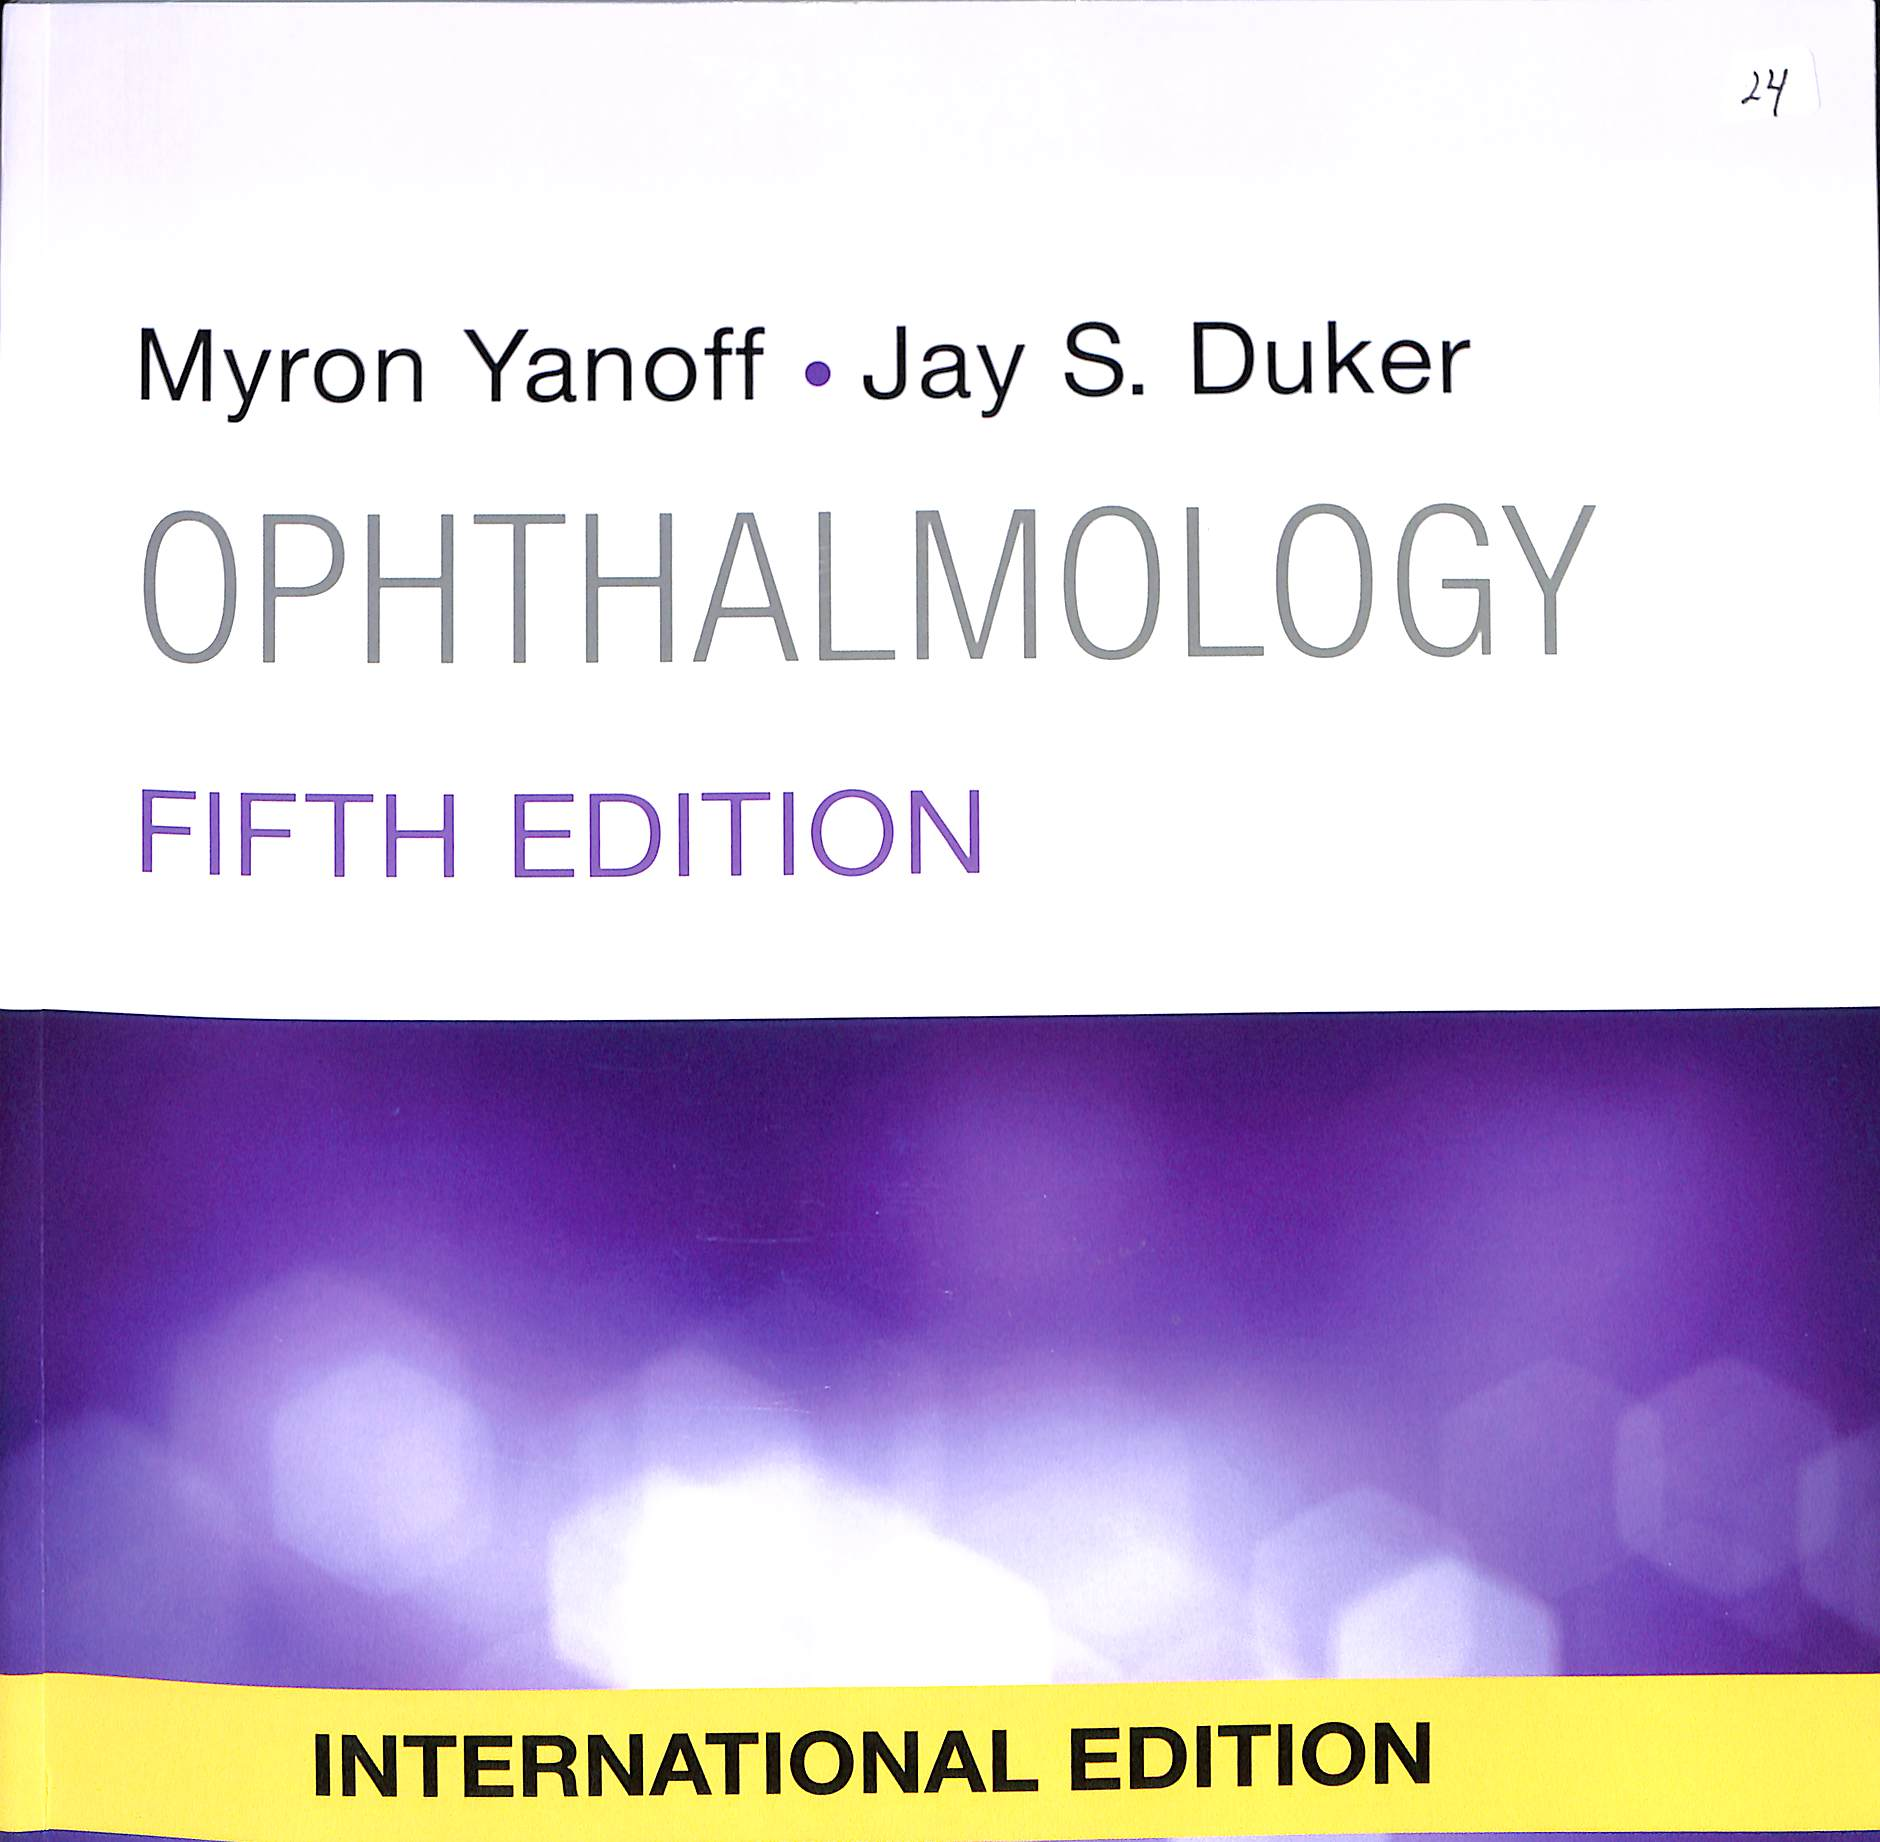 Ophthalmology fifth edition